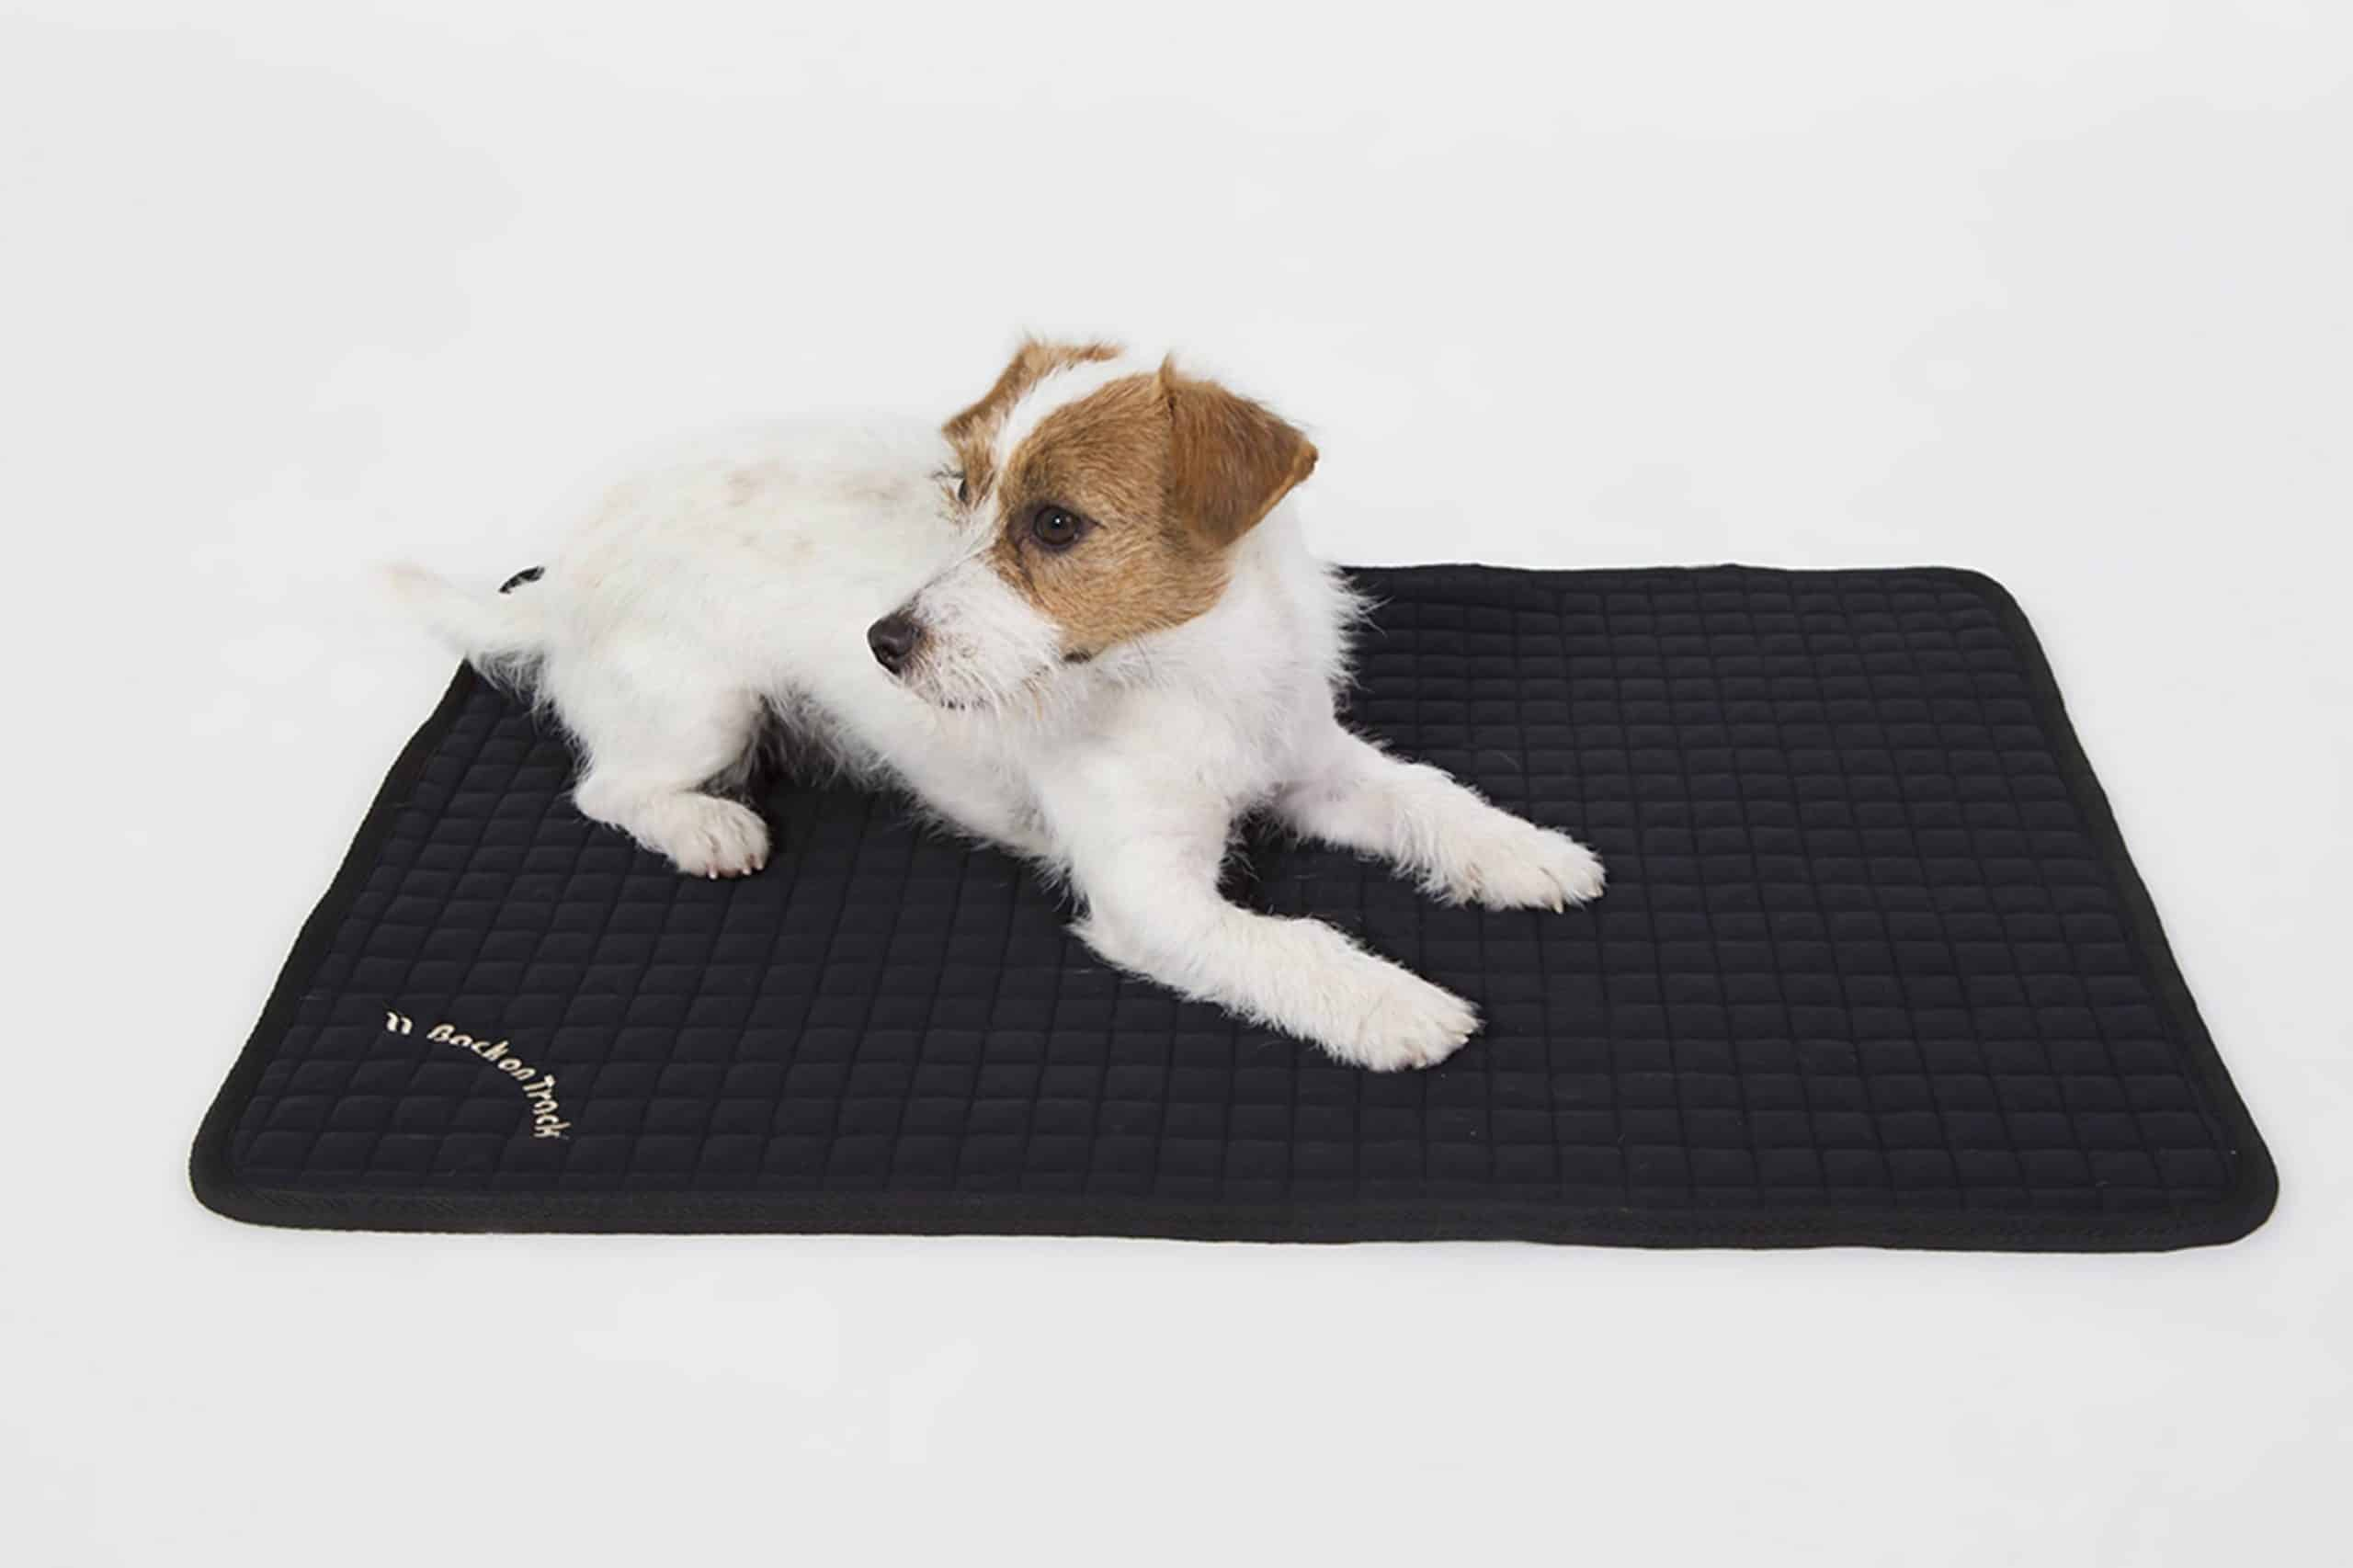 acheter un tapis pour chien solide et pas cher le guide complet. Black Bedroom Furniture Sets. Home Design Ideas